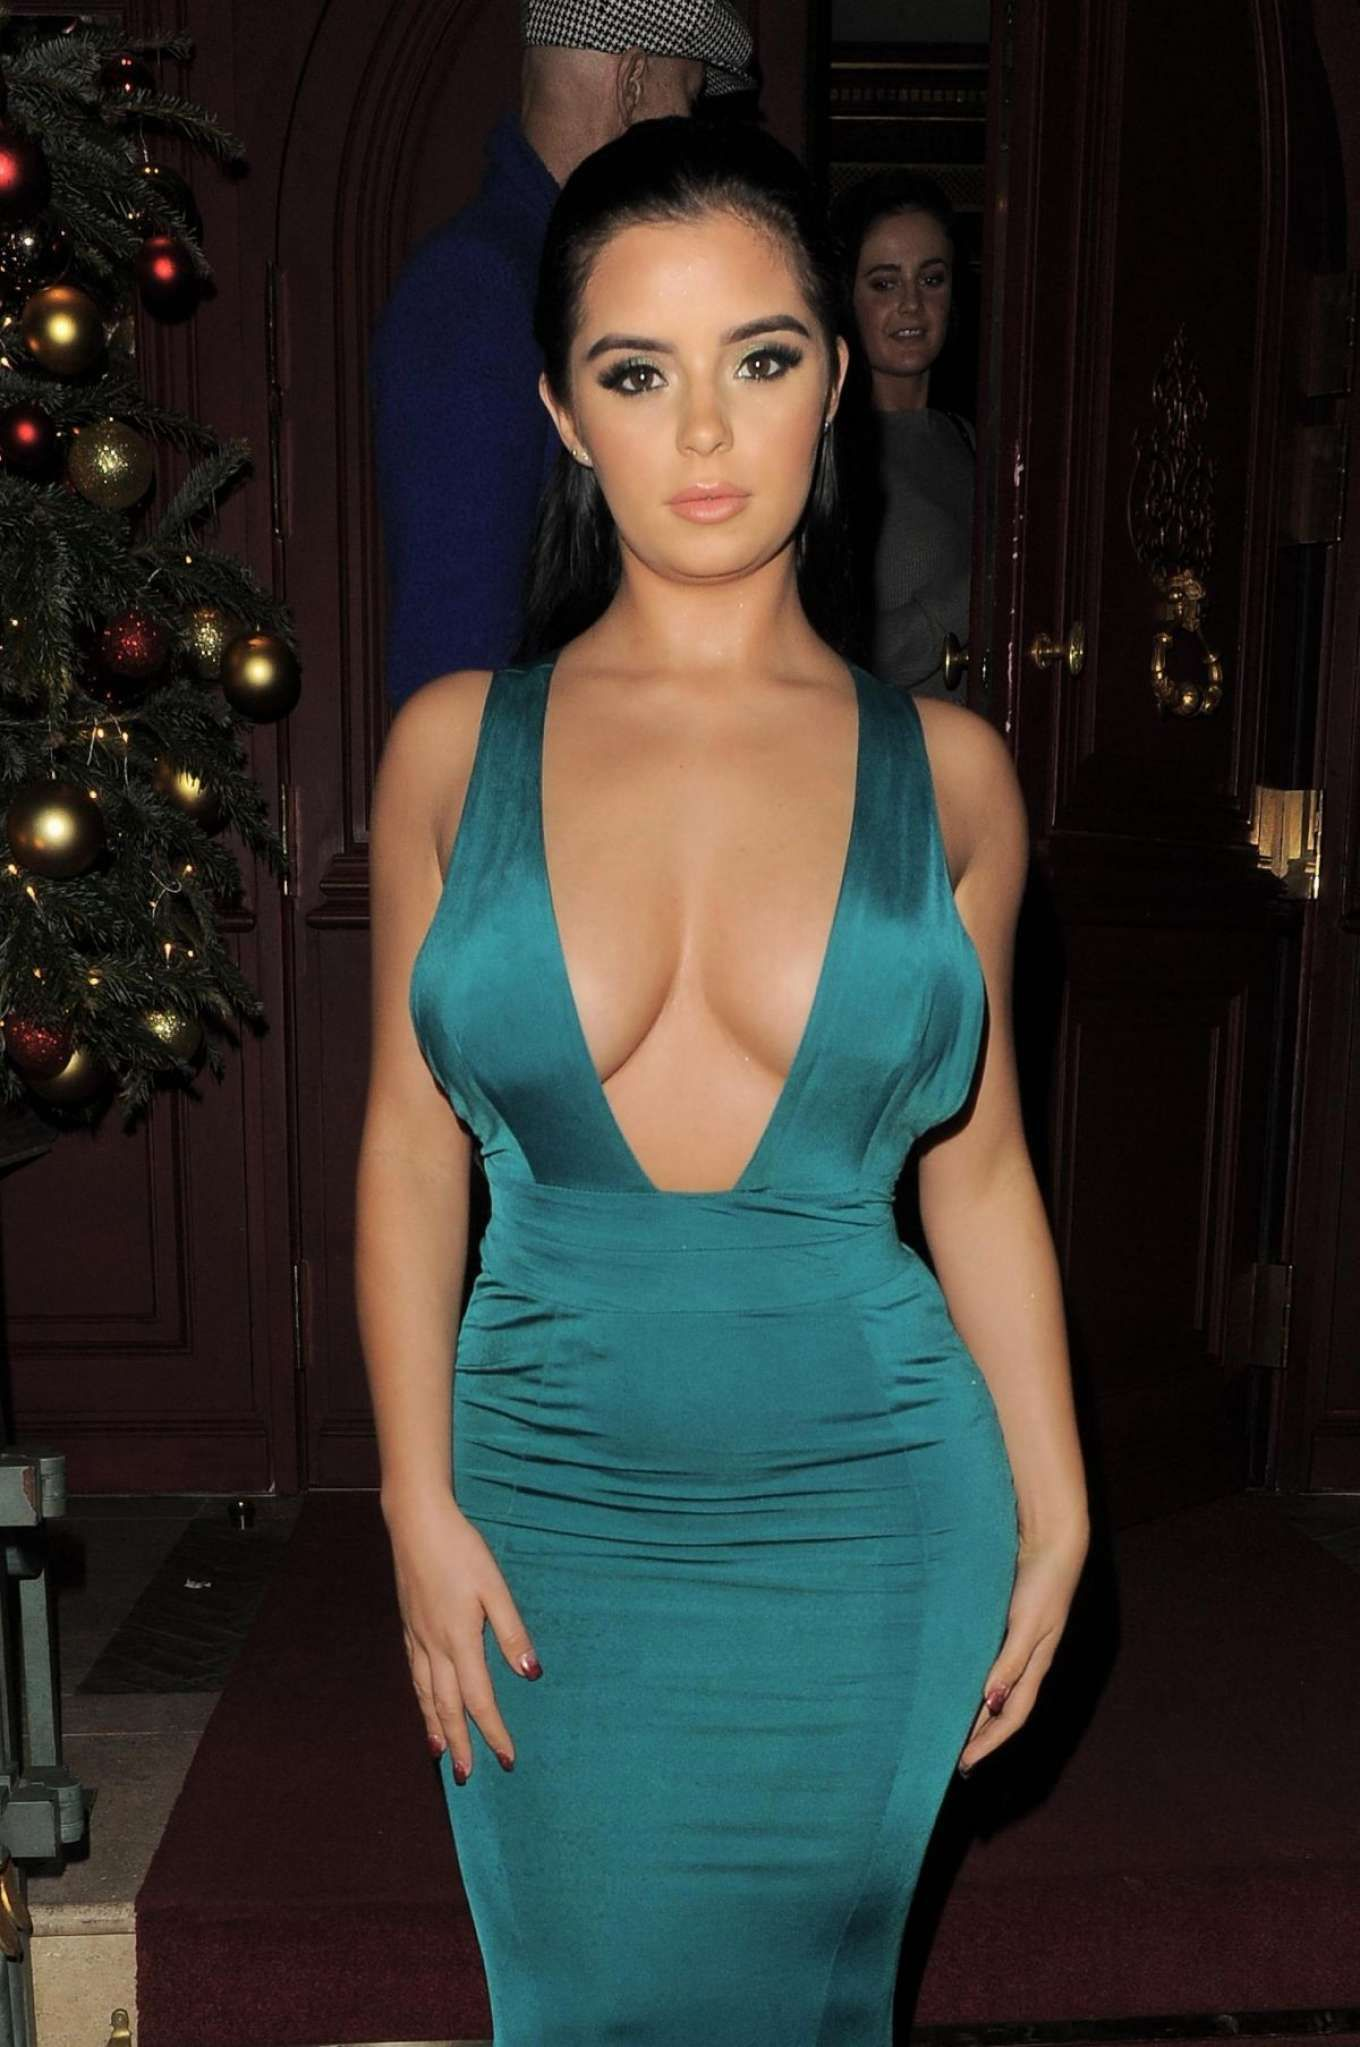 Green dress night out  Demi Rose in Green Dress u Night Out in Mayfair  Demi rose Boobs